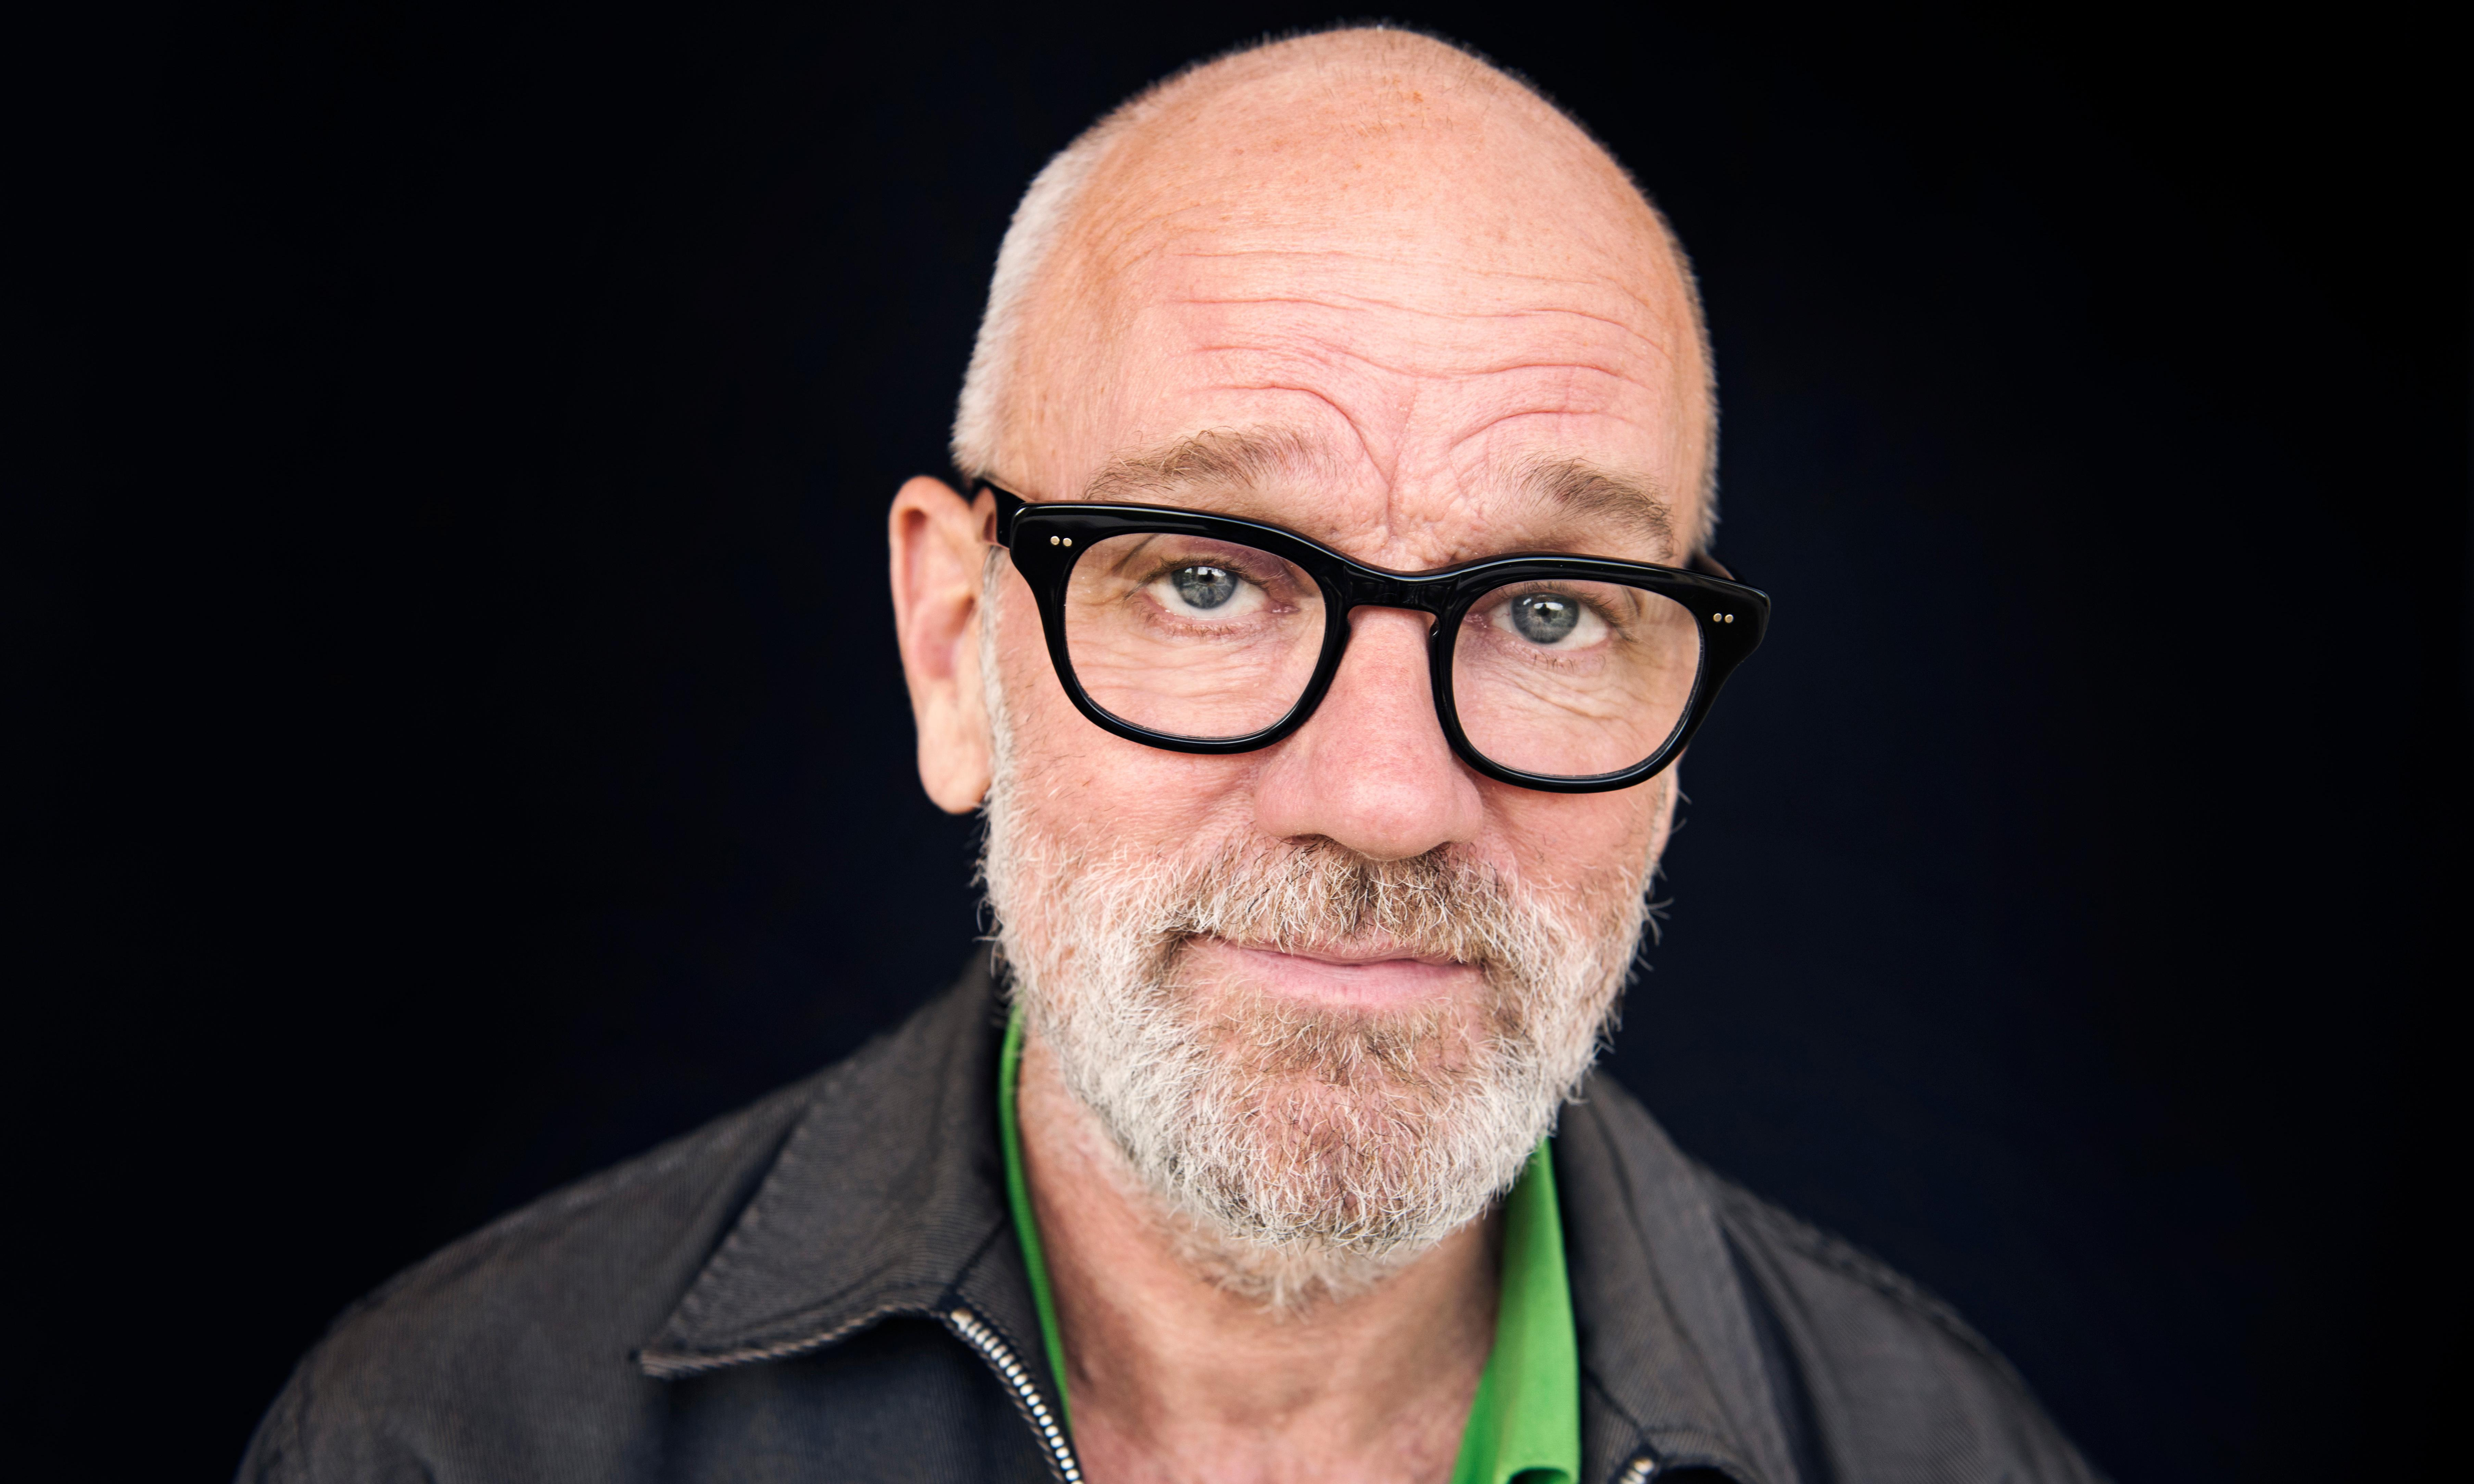 REM's Michael Stipe on his 37,000 photos – of stars, lovers and Kurt Cobain's hands